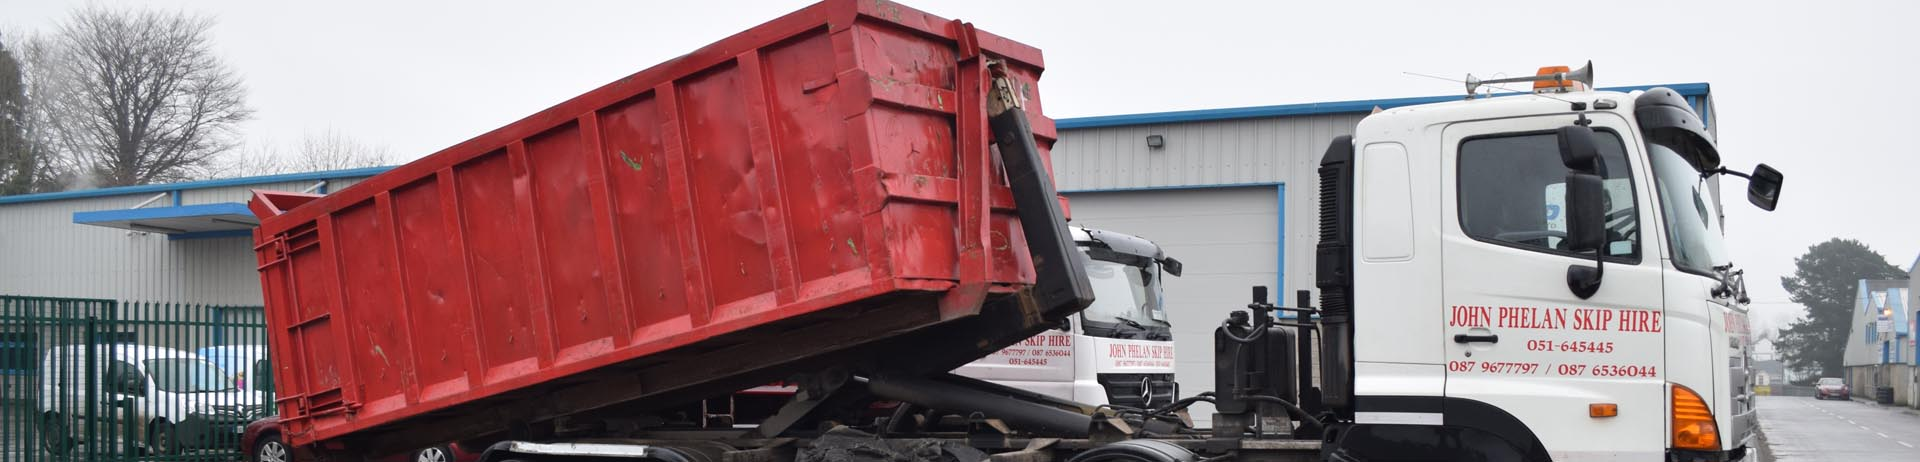 commercial skip hire image